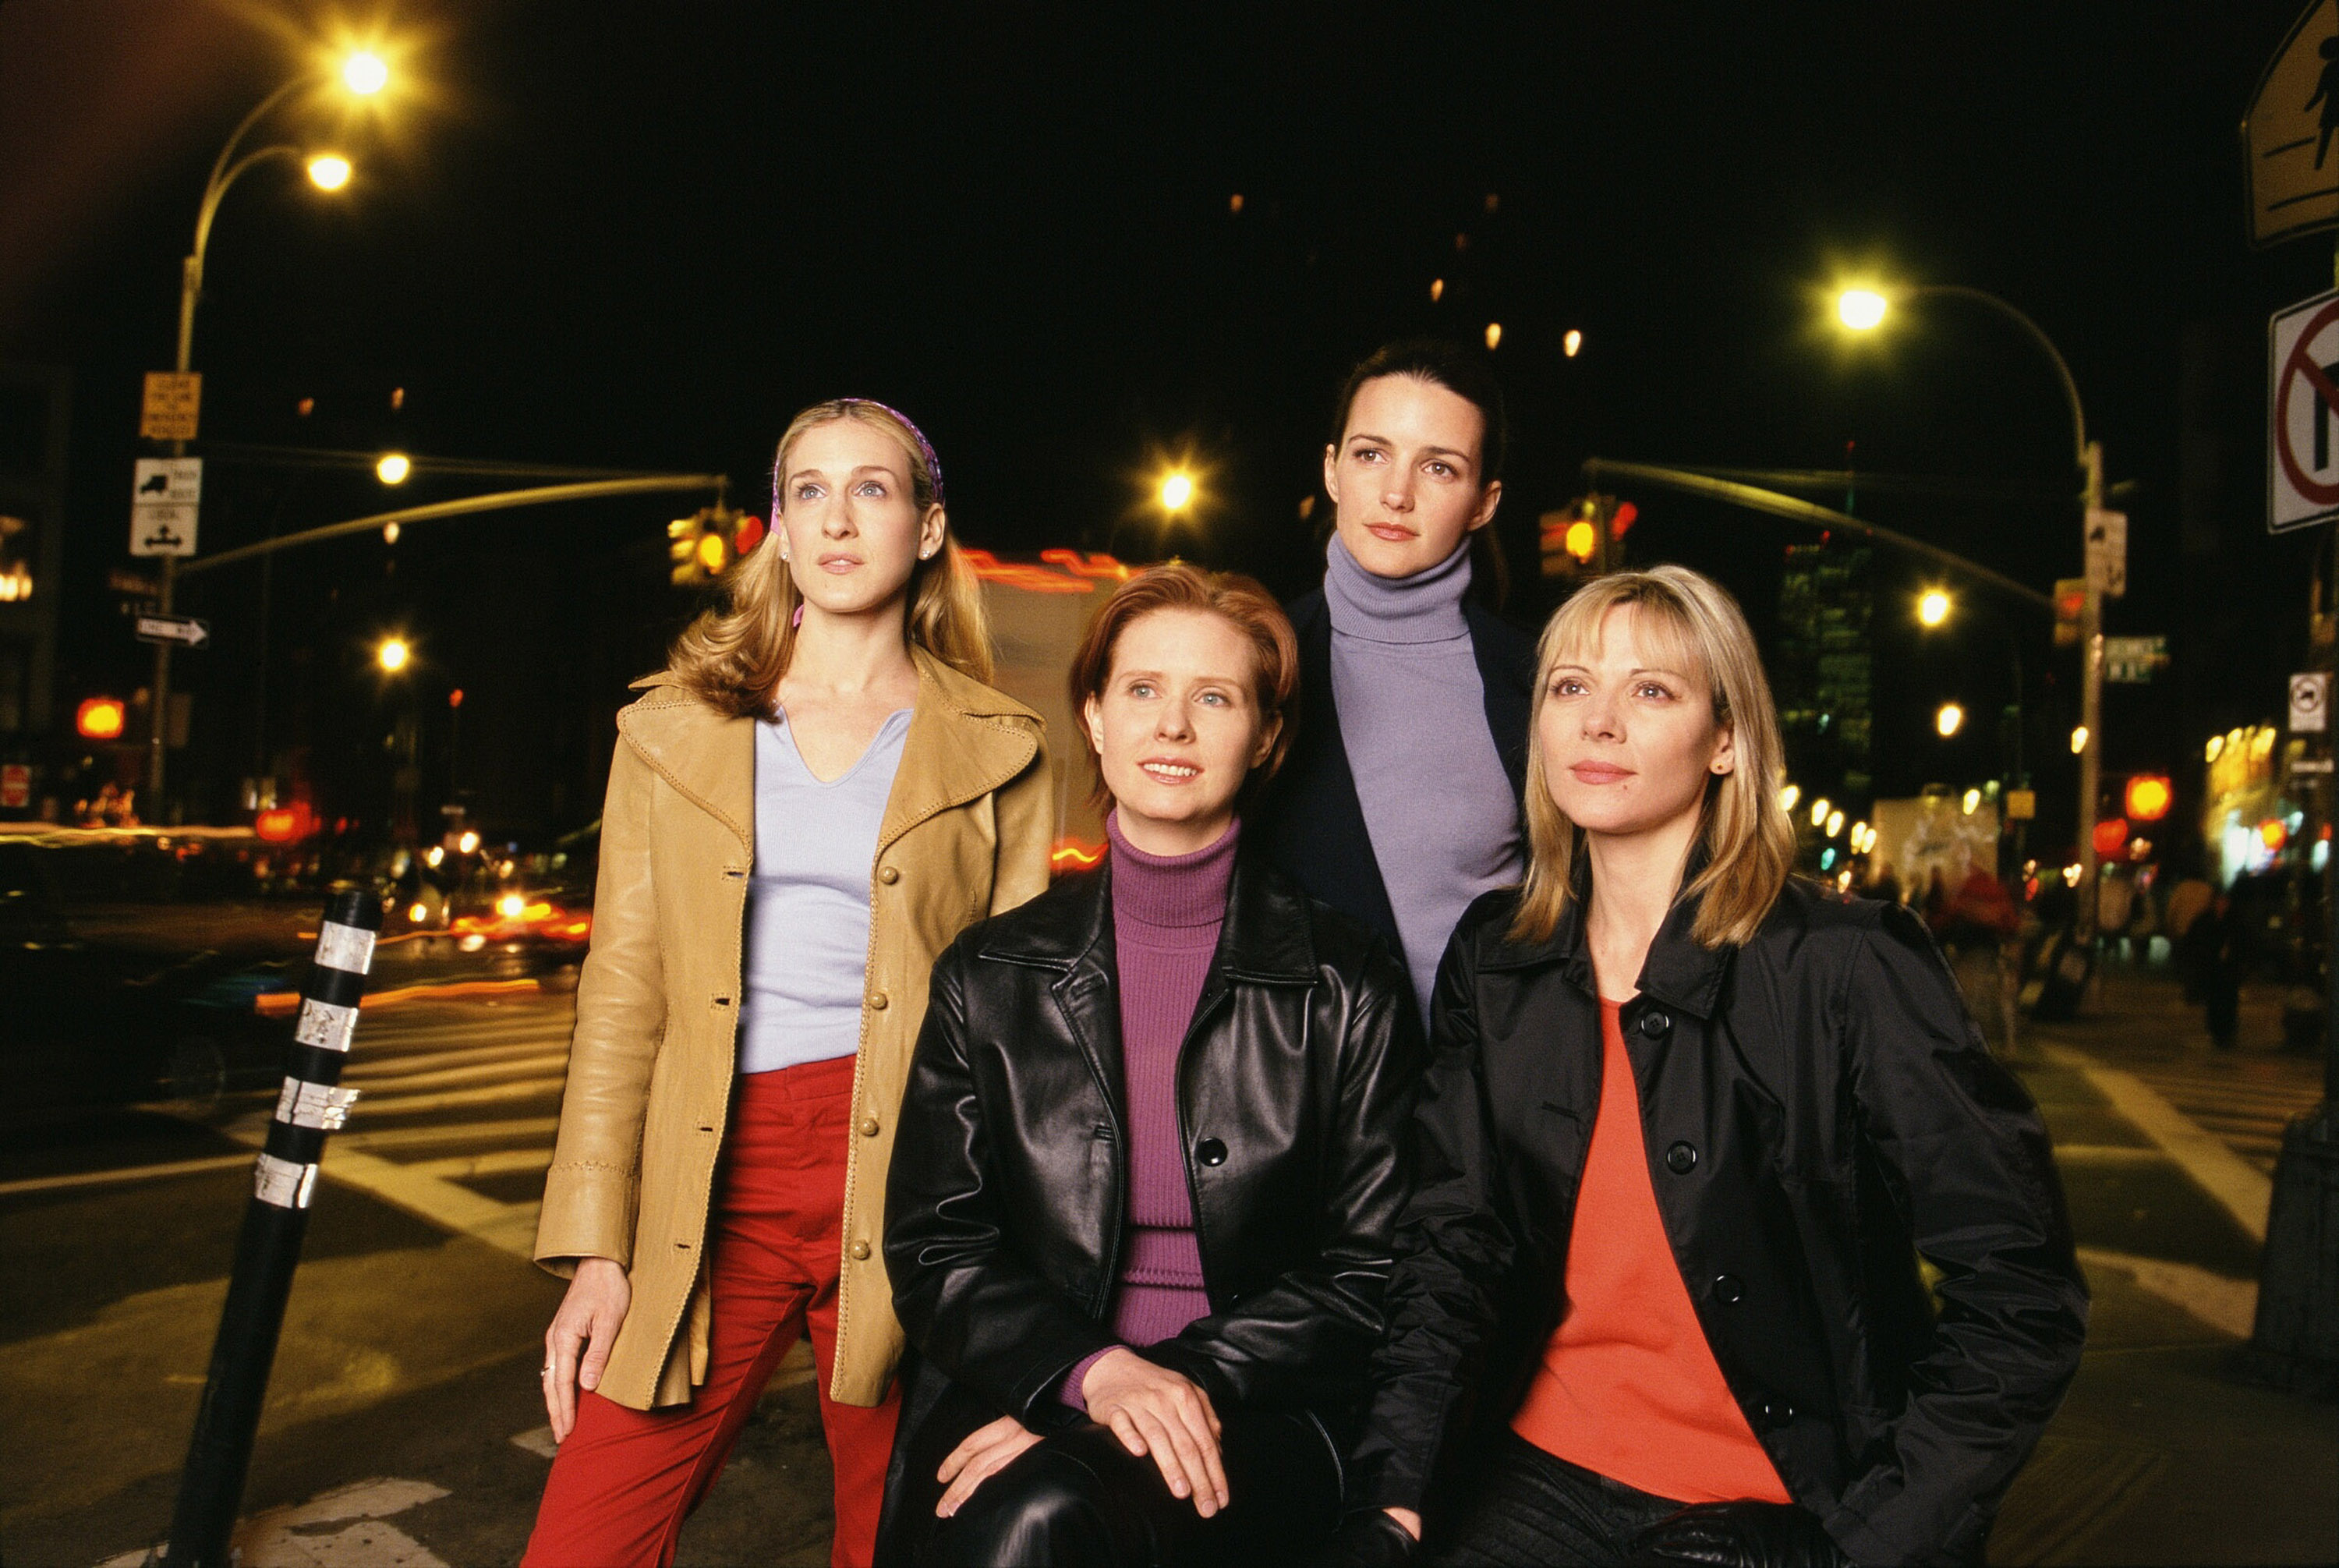 Four women pose for a camera. In the background is a city intersection at night.